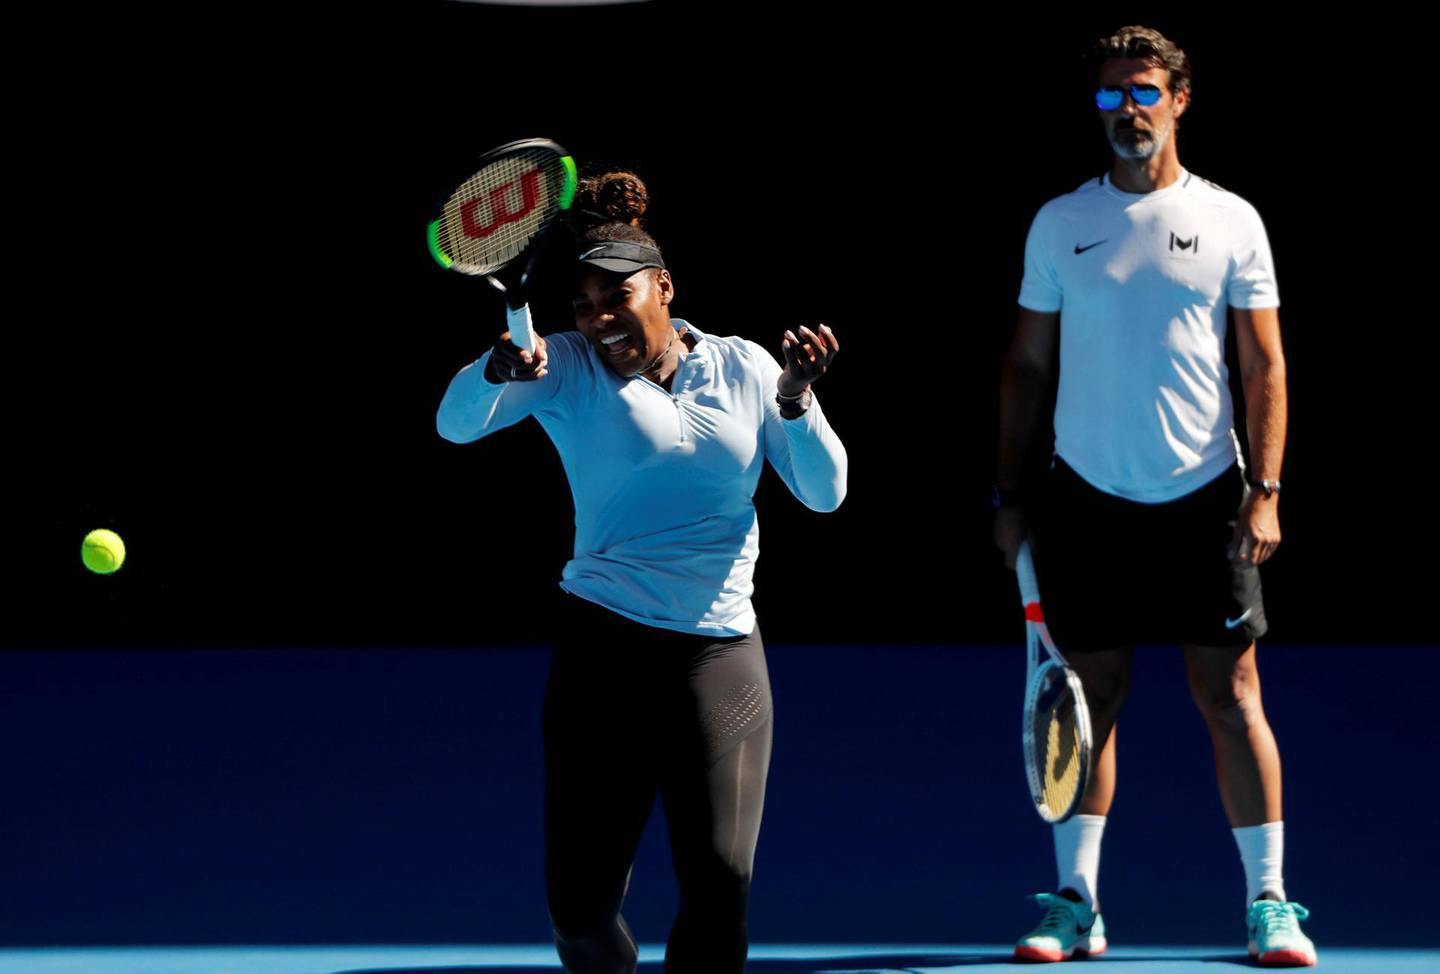 Tennis - Australian Open - Melbourne Park, Melbourne, Australia - January 13, 2019-Serena Williams of the U.S. and her coach Patrick Mouratoglou at a practice.   REUTERS/Kim Kyung-Hoon